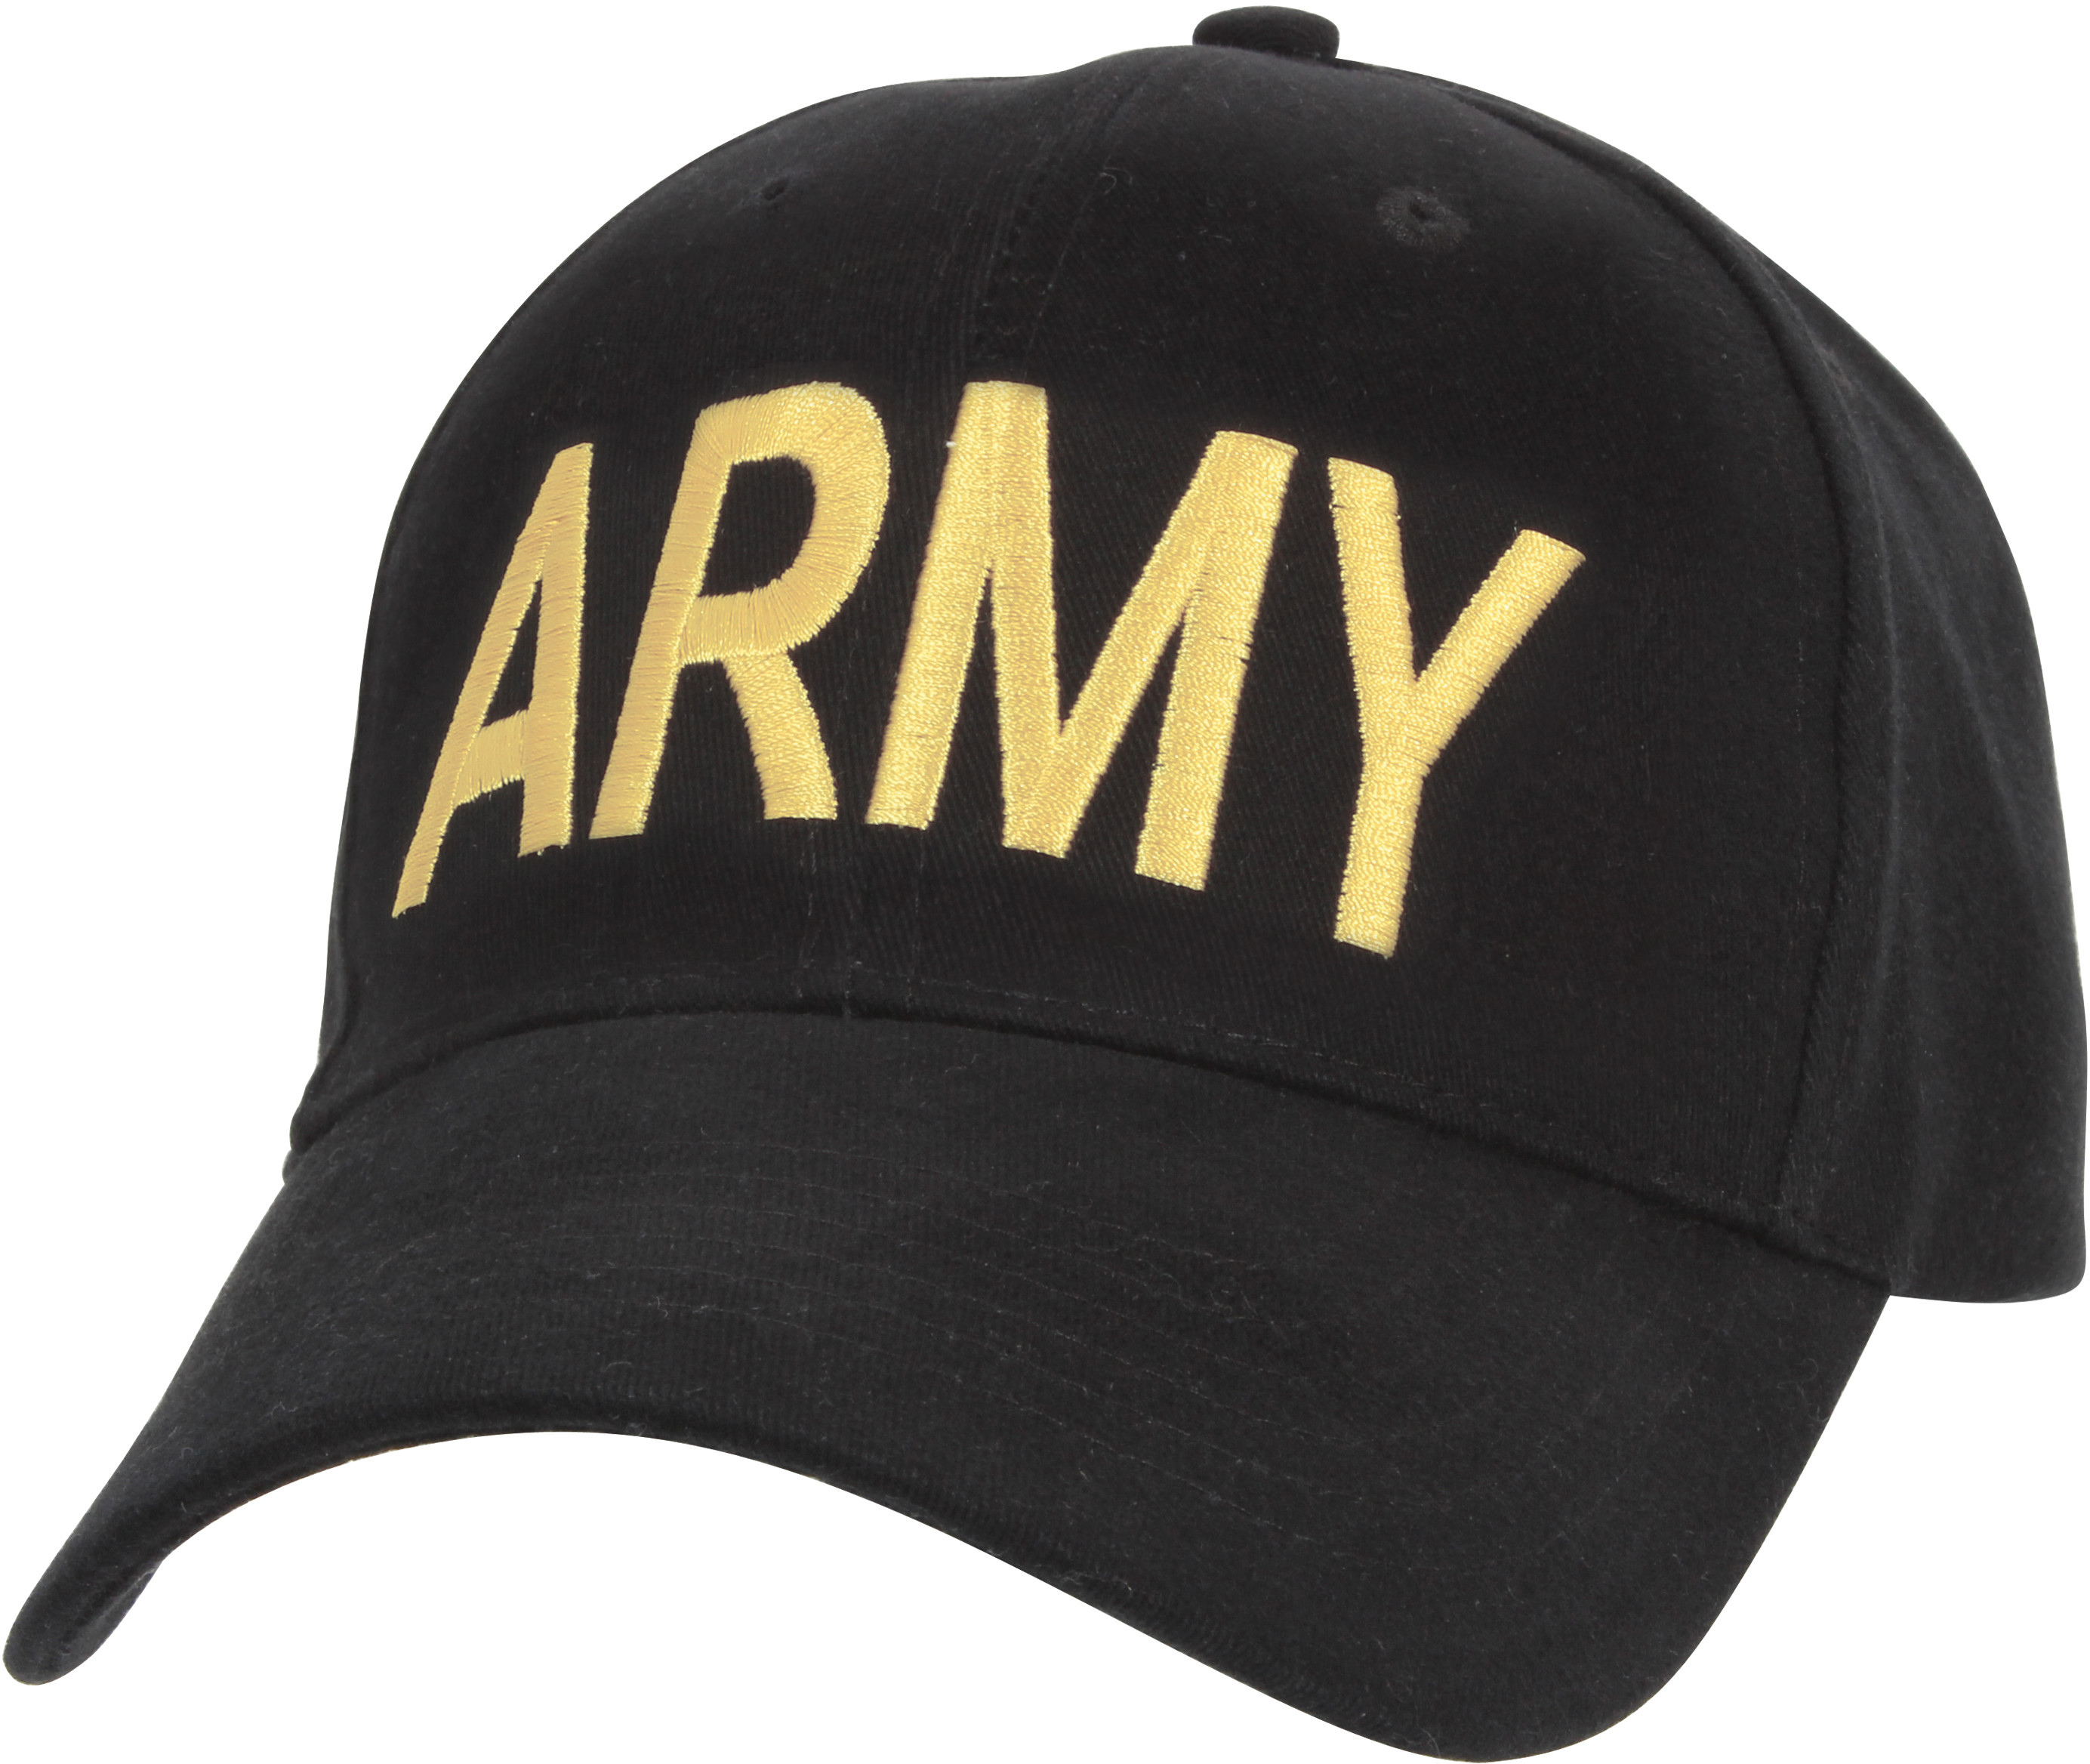 95765d1c120 More Views. Black Army Embroidered Supreme Low Profile Adjustable Cap